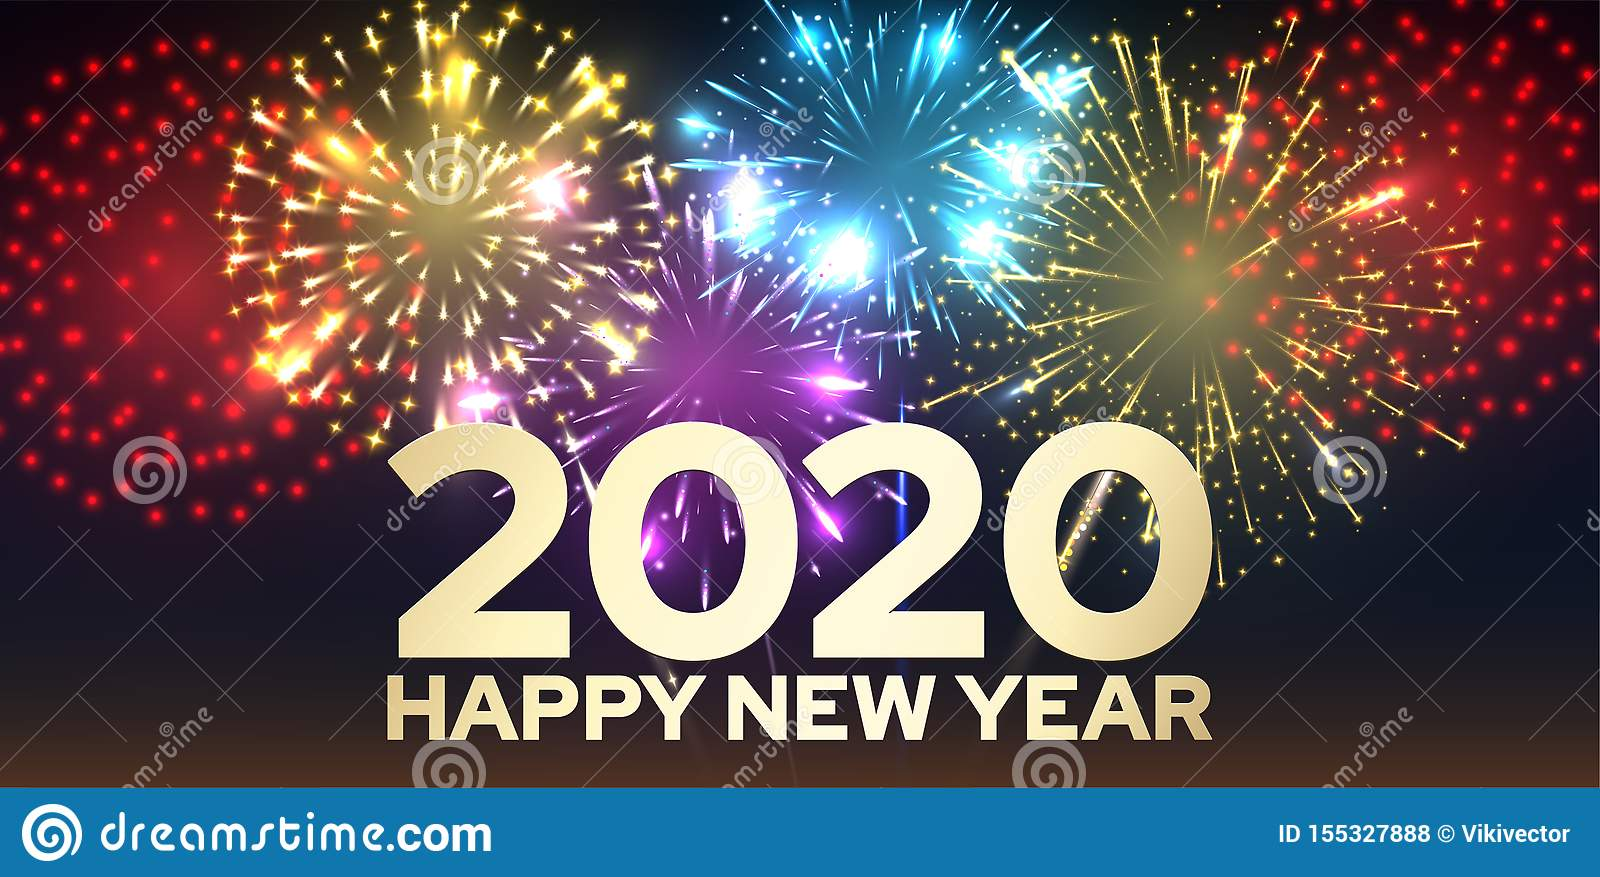 1600x877 - Happy New Year Backgrounds 13